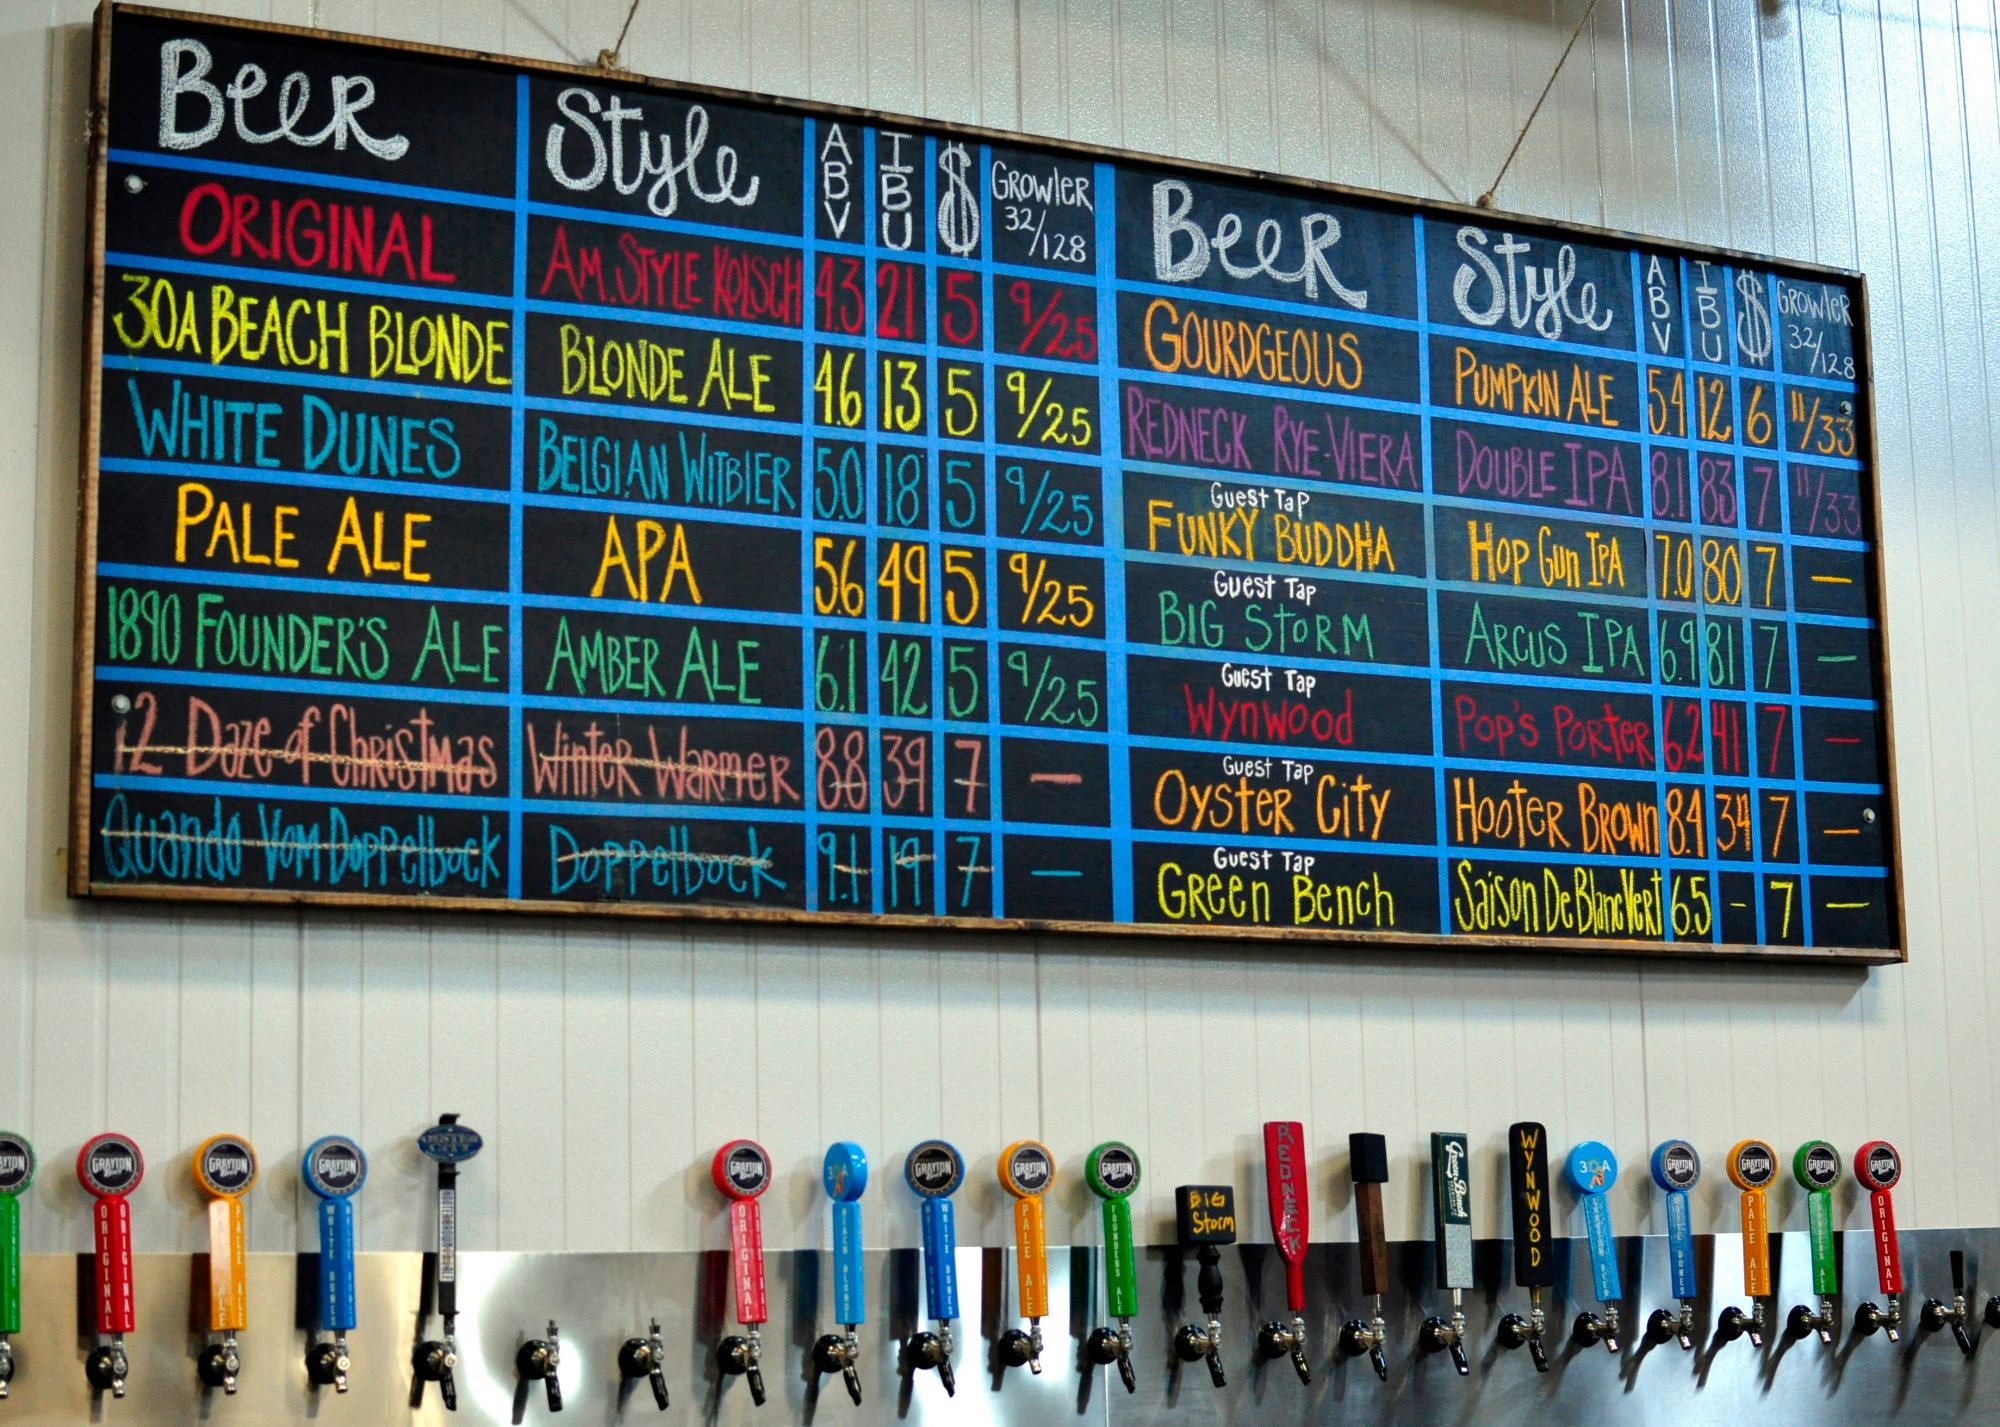 Grayton Beer Company in Santa Rosa Beach